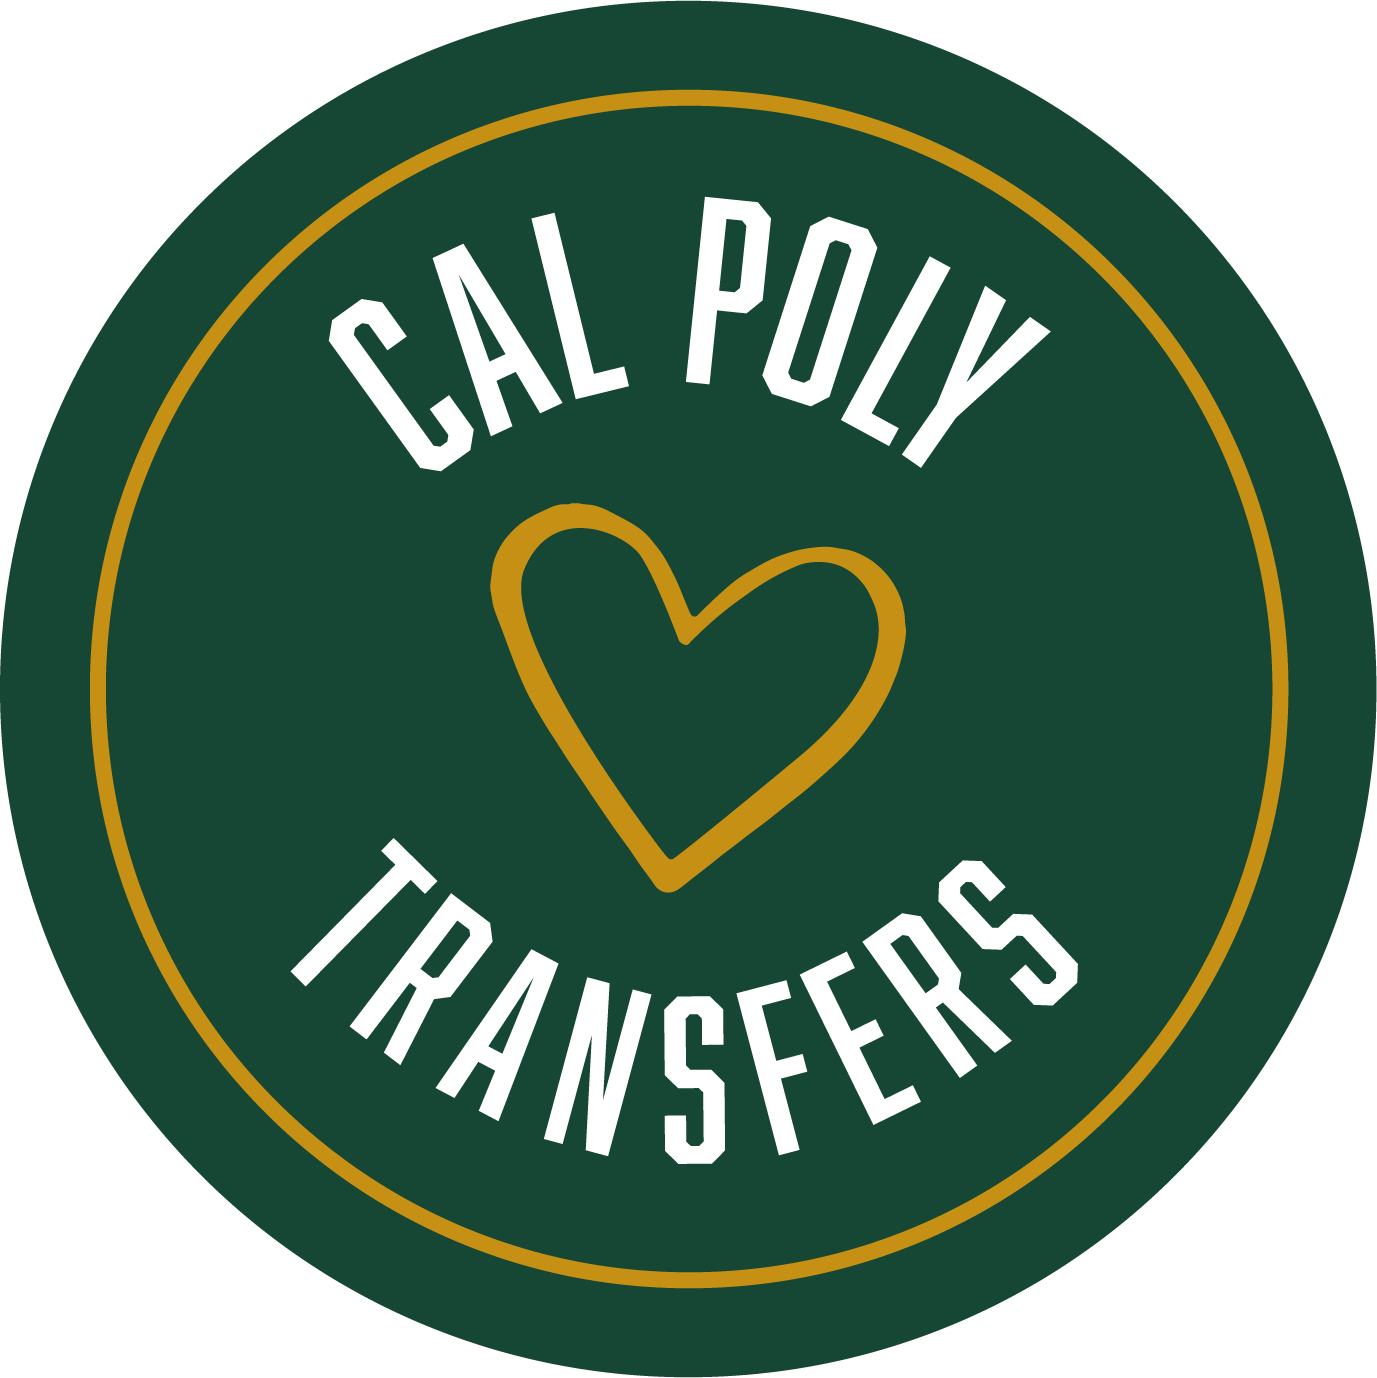 Cal Poly heart Transfers